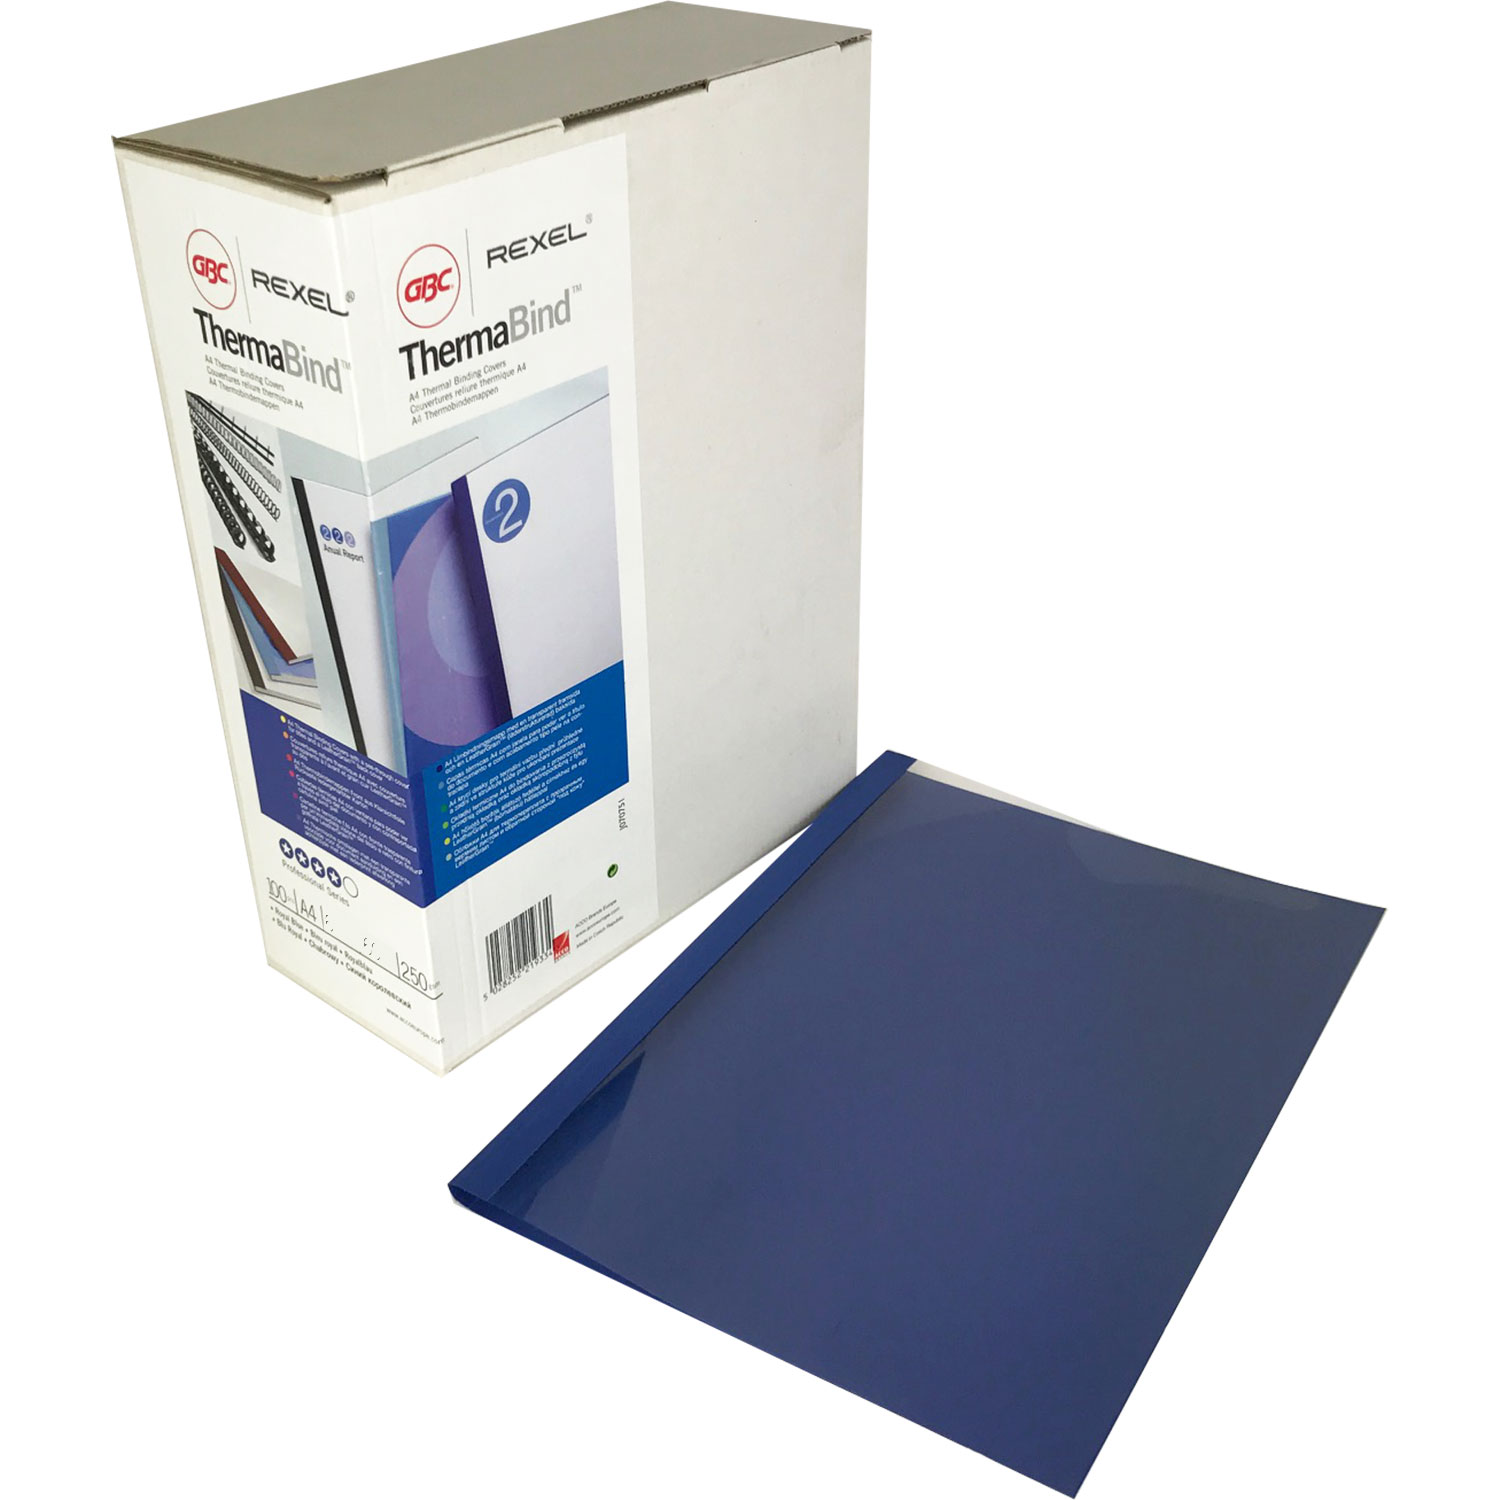 GBC 6mm Blue Leathergrain Thermal Binding Covers 451034U (100)